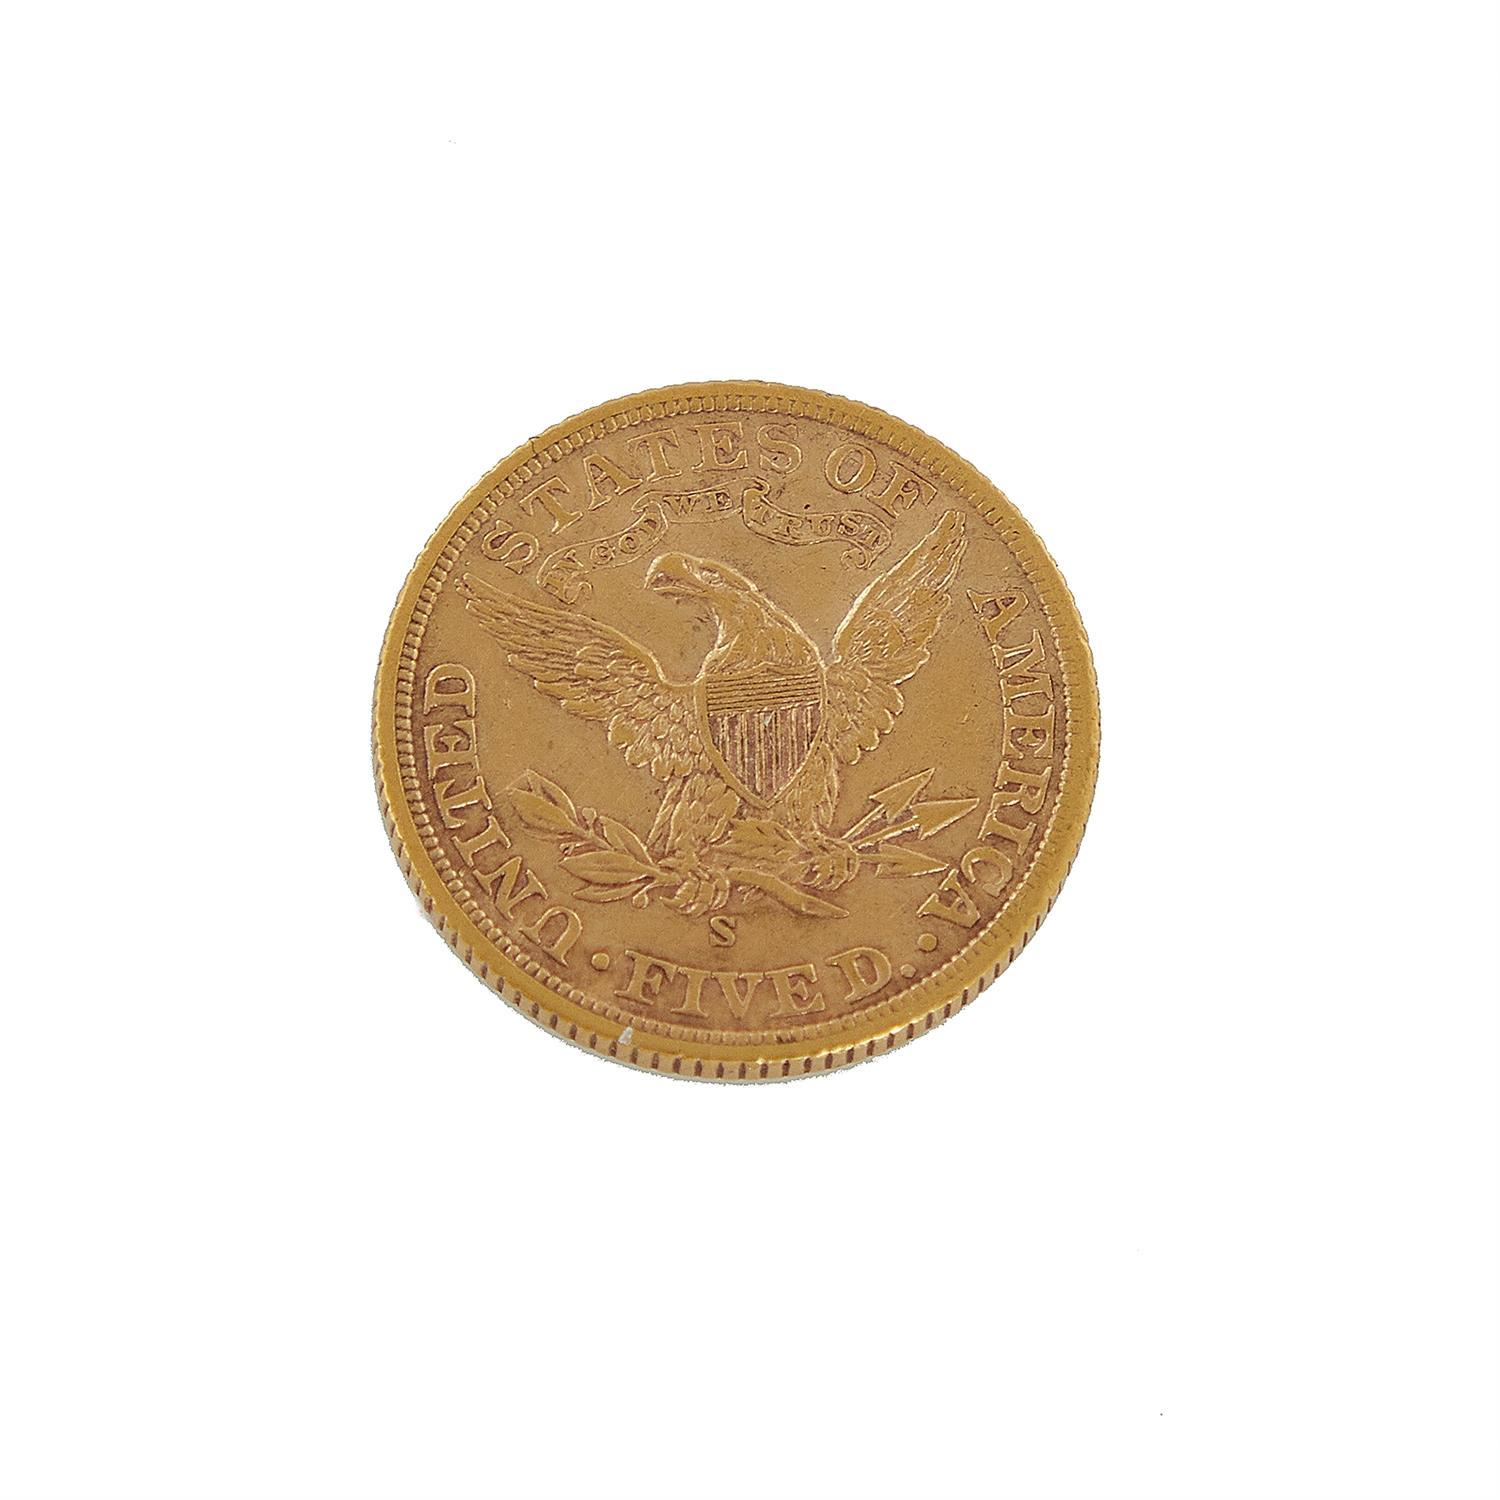 US $5 Liberty Head gold coin